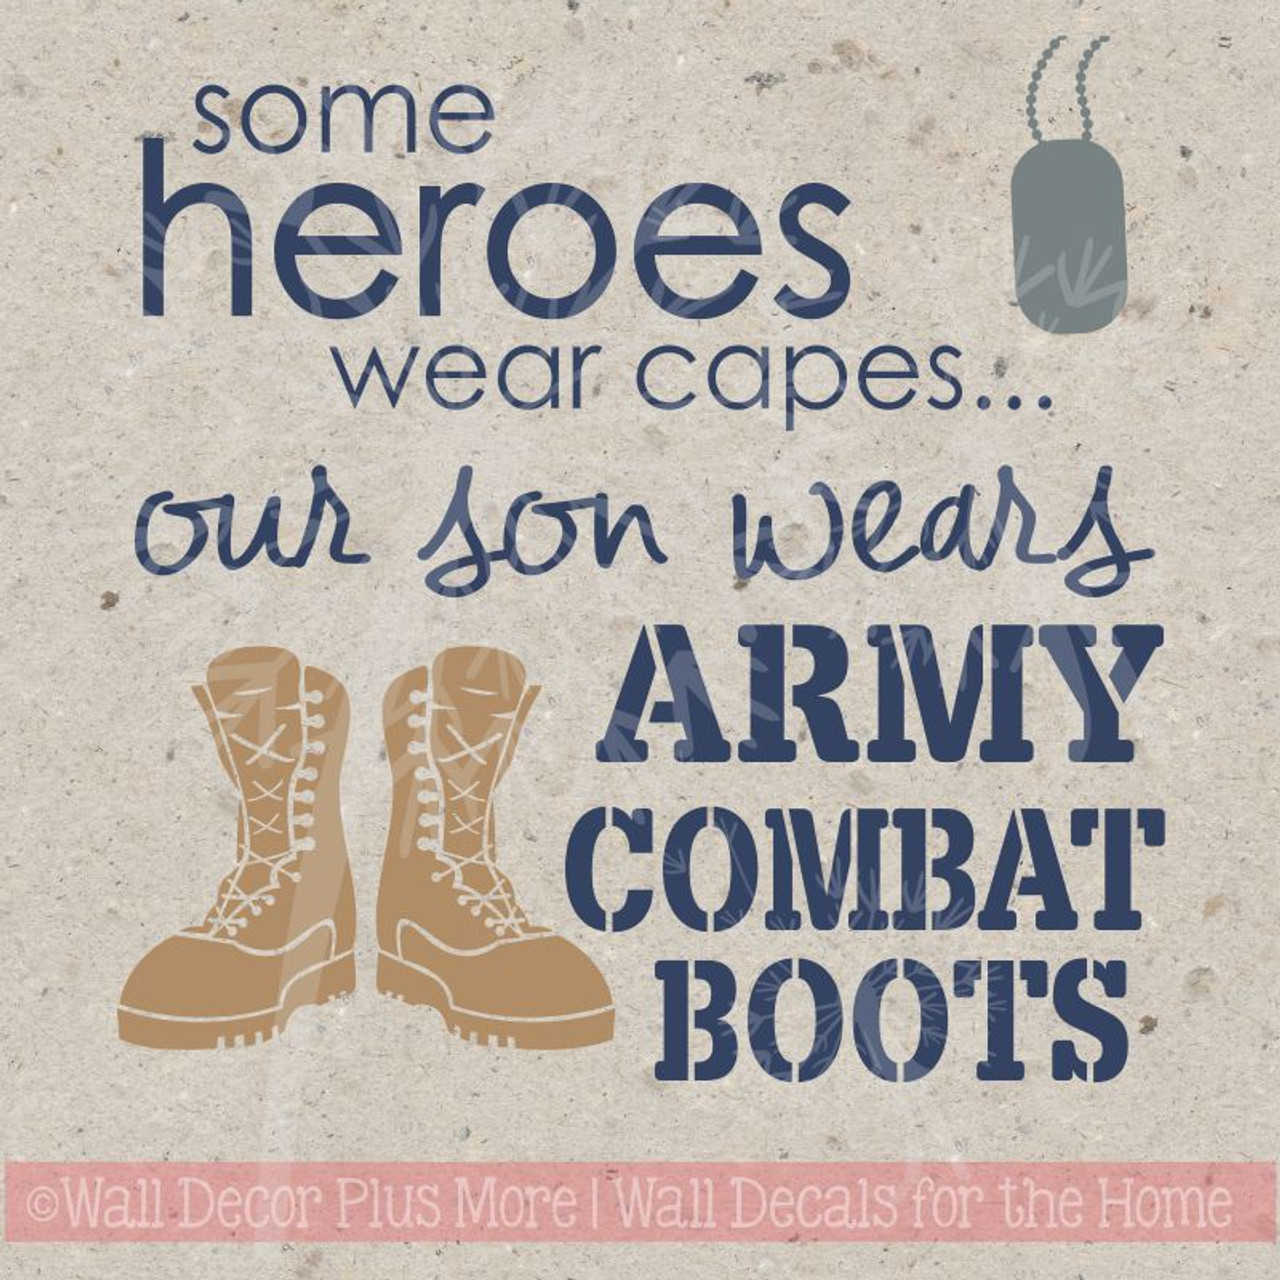 Boots Quotes Extraordinary Our Son Wears Combat Boots Vinyl Wall Decals Sticker Quotes